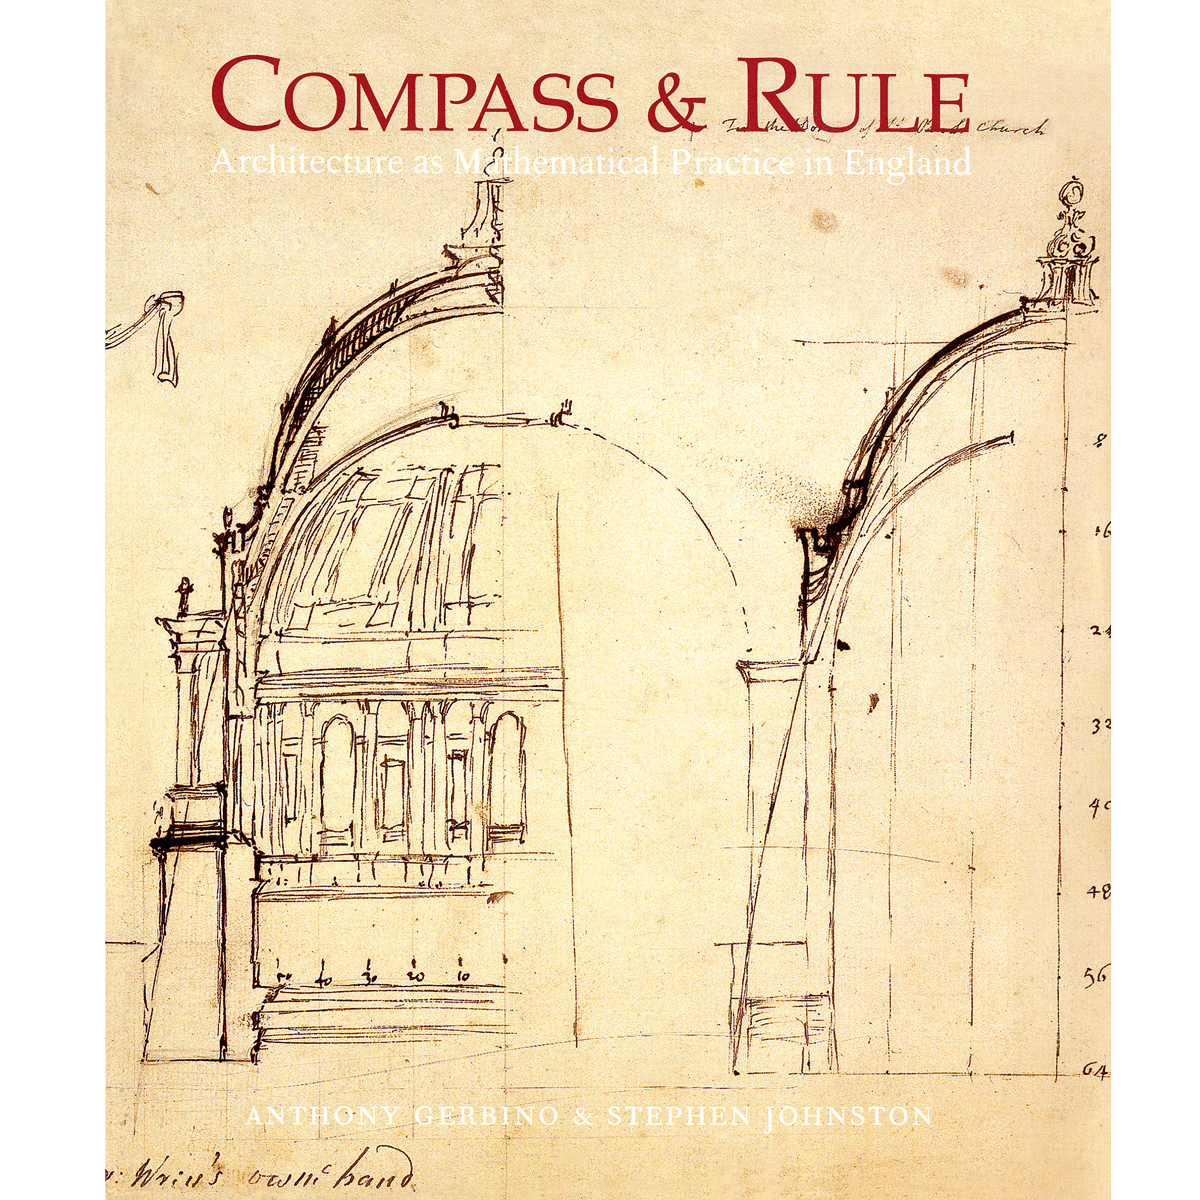 Compass & Rule